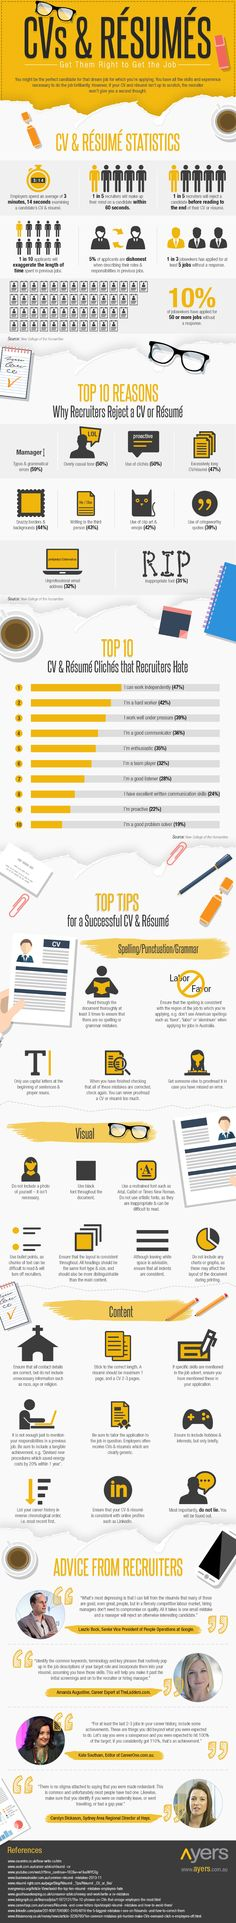 Steve Petherbridge (sjpetherbridge) on Pinterest - how to create perfect resume